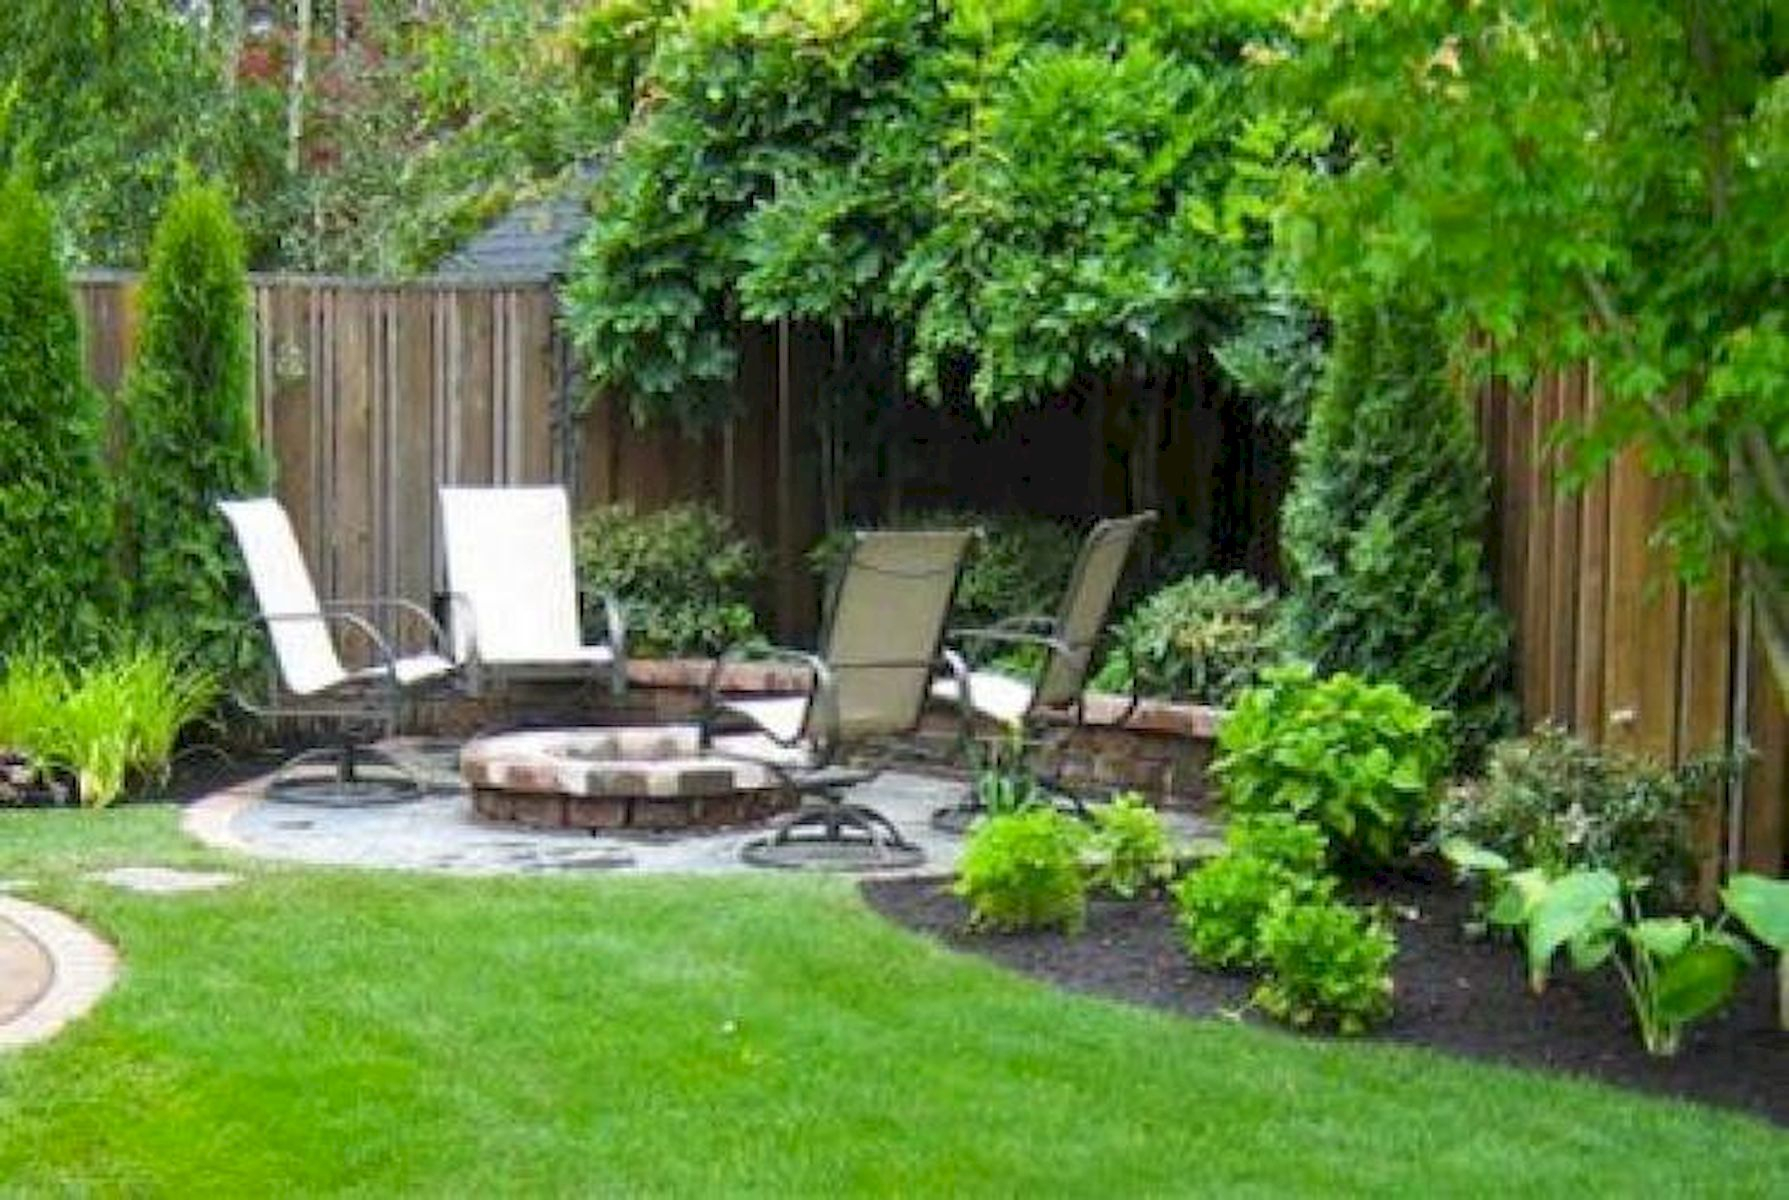 60 Awesome Backyard Privacy Design And Decor Ideas pertaining to 14 Awesome Initiatives of How to Craft Privacy Backyard Ideas